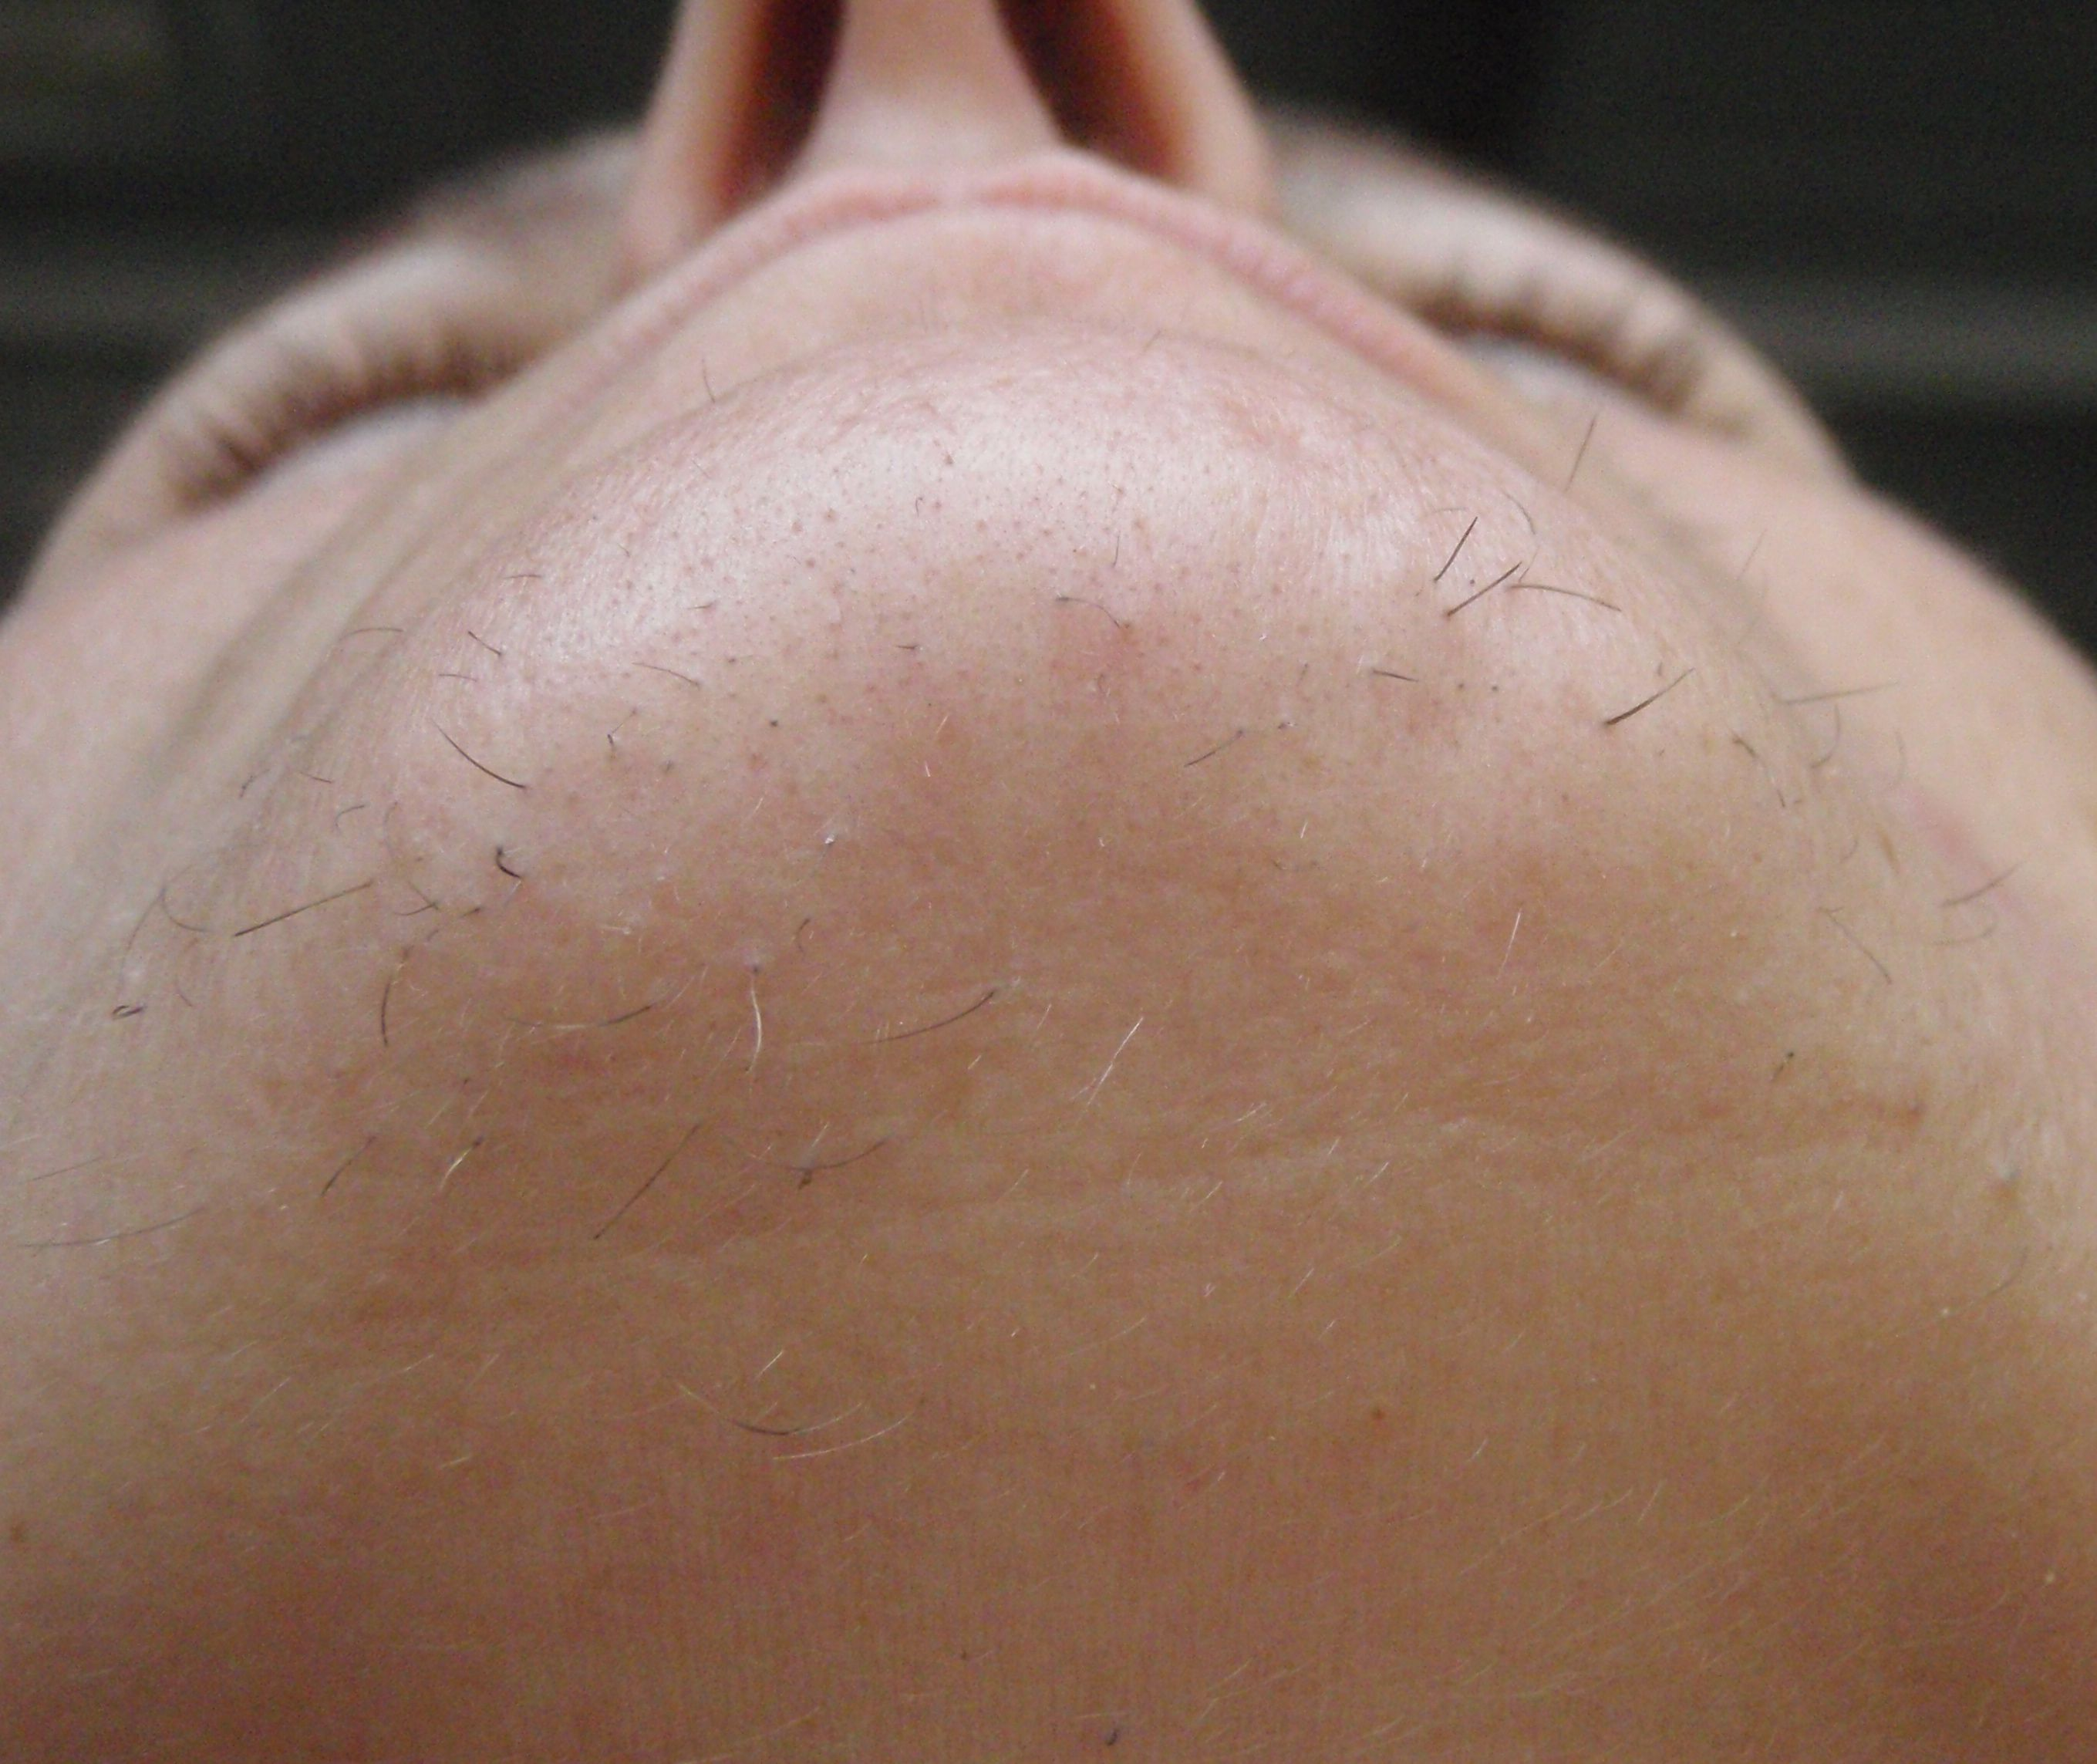 Hirsutism is excessive hairiness on parts of the body